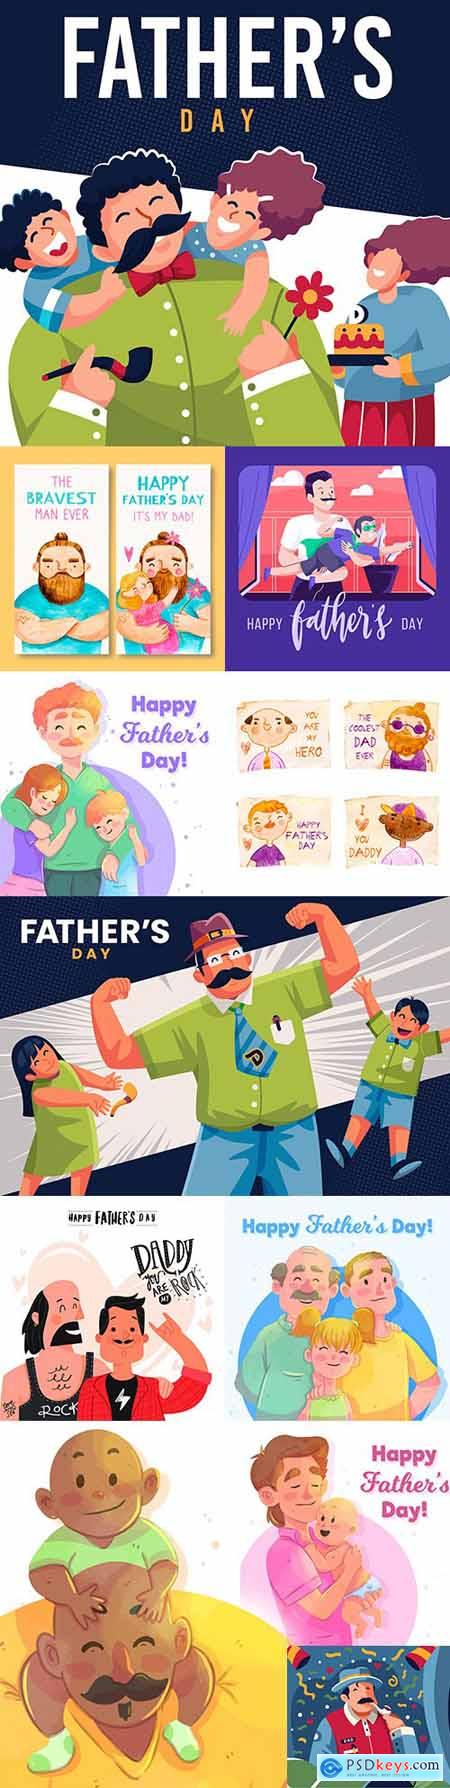 Happy Father s Day design greeting card and banner 2